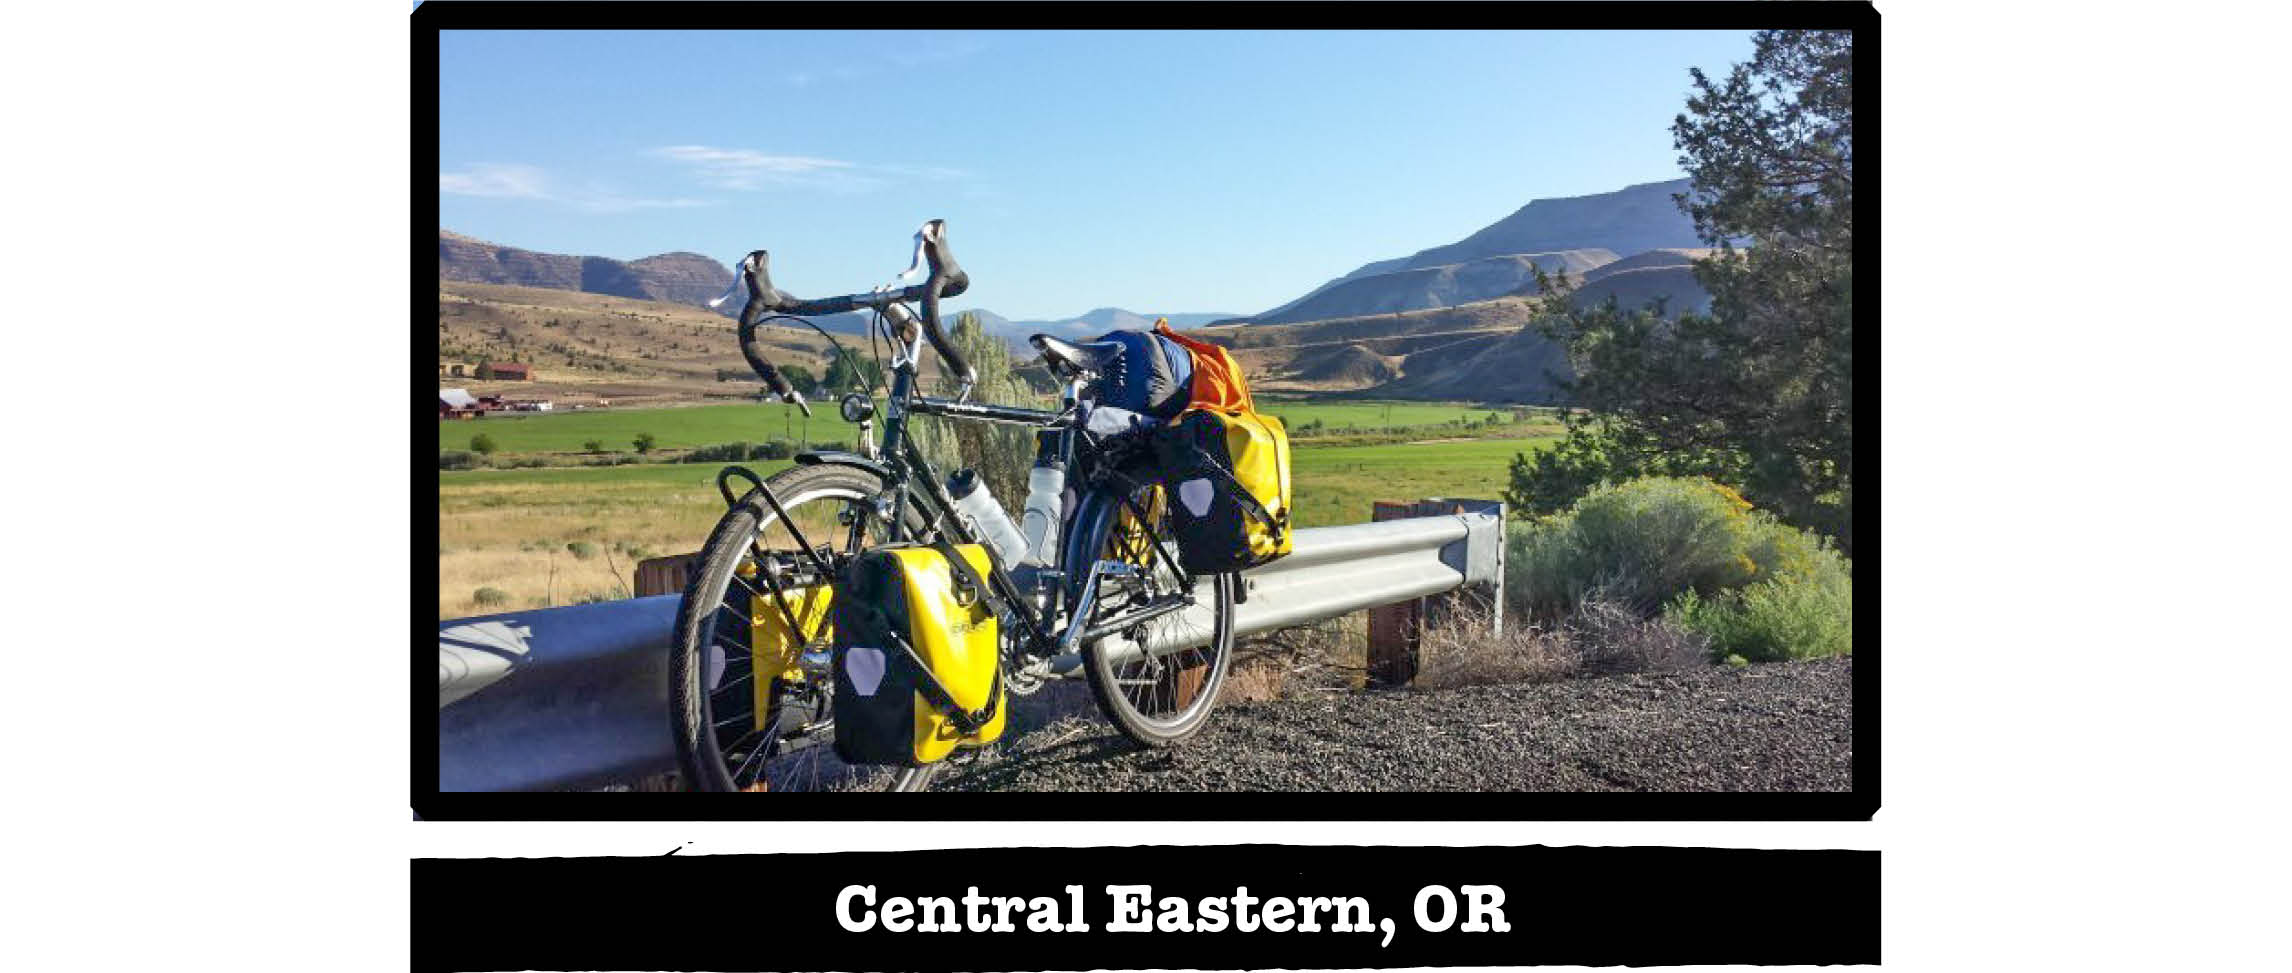 Left side view of a Surly Long Haul Trucker bike, along a rail with hills behind - Central Eastern, OR tag below image